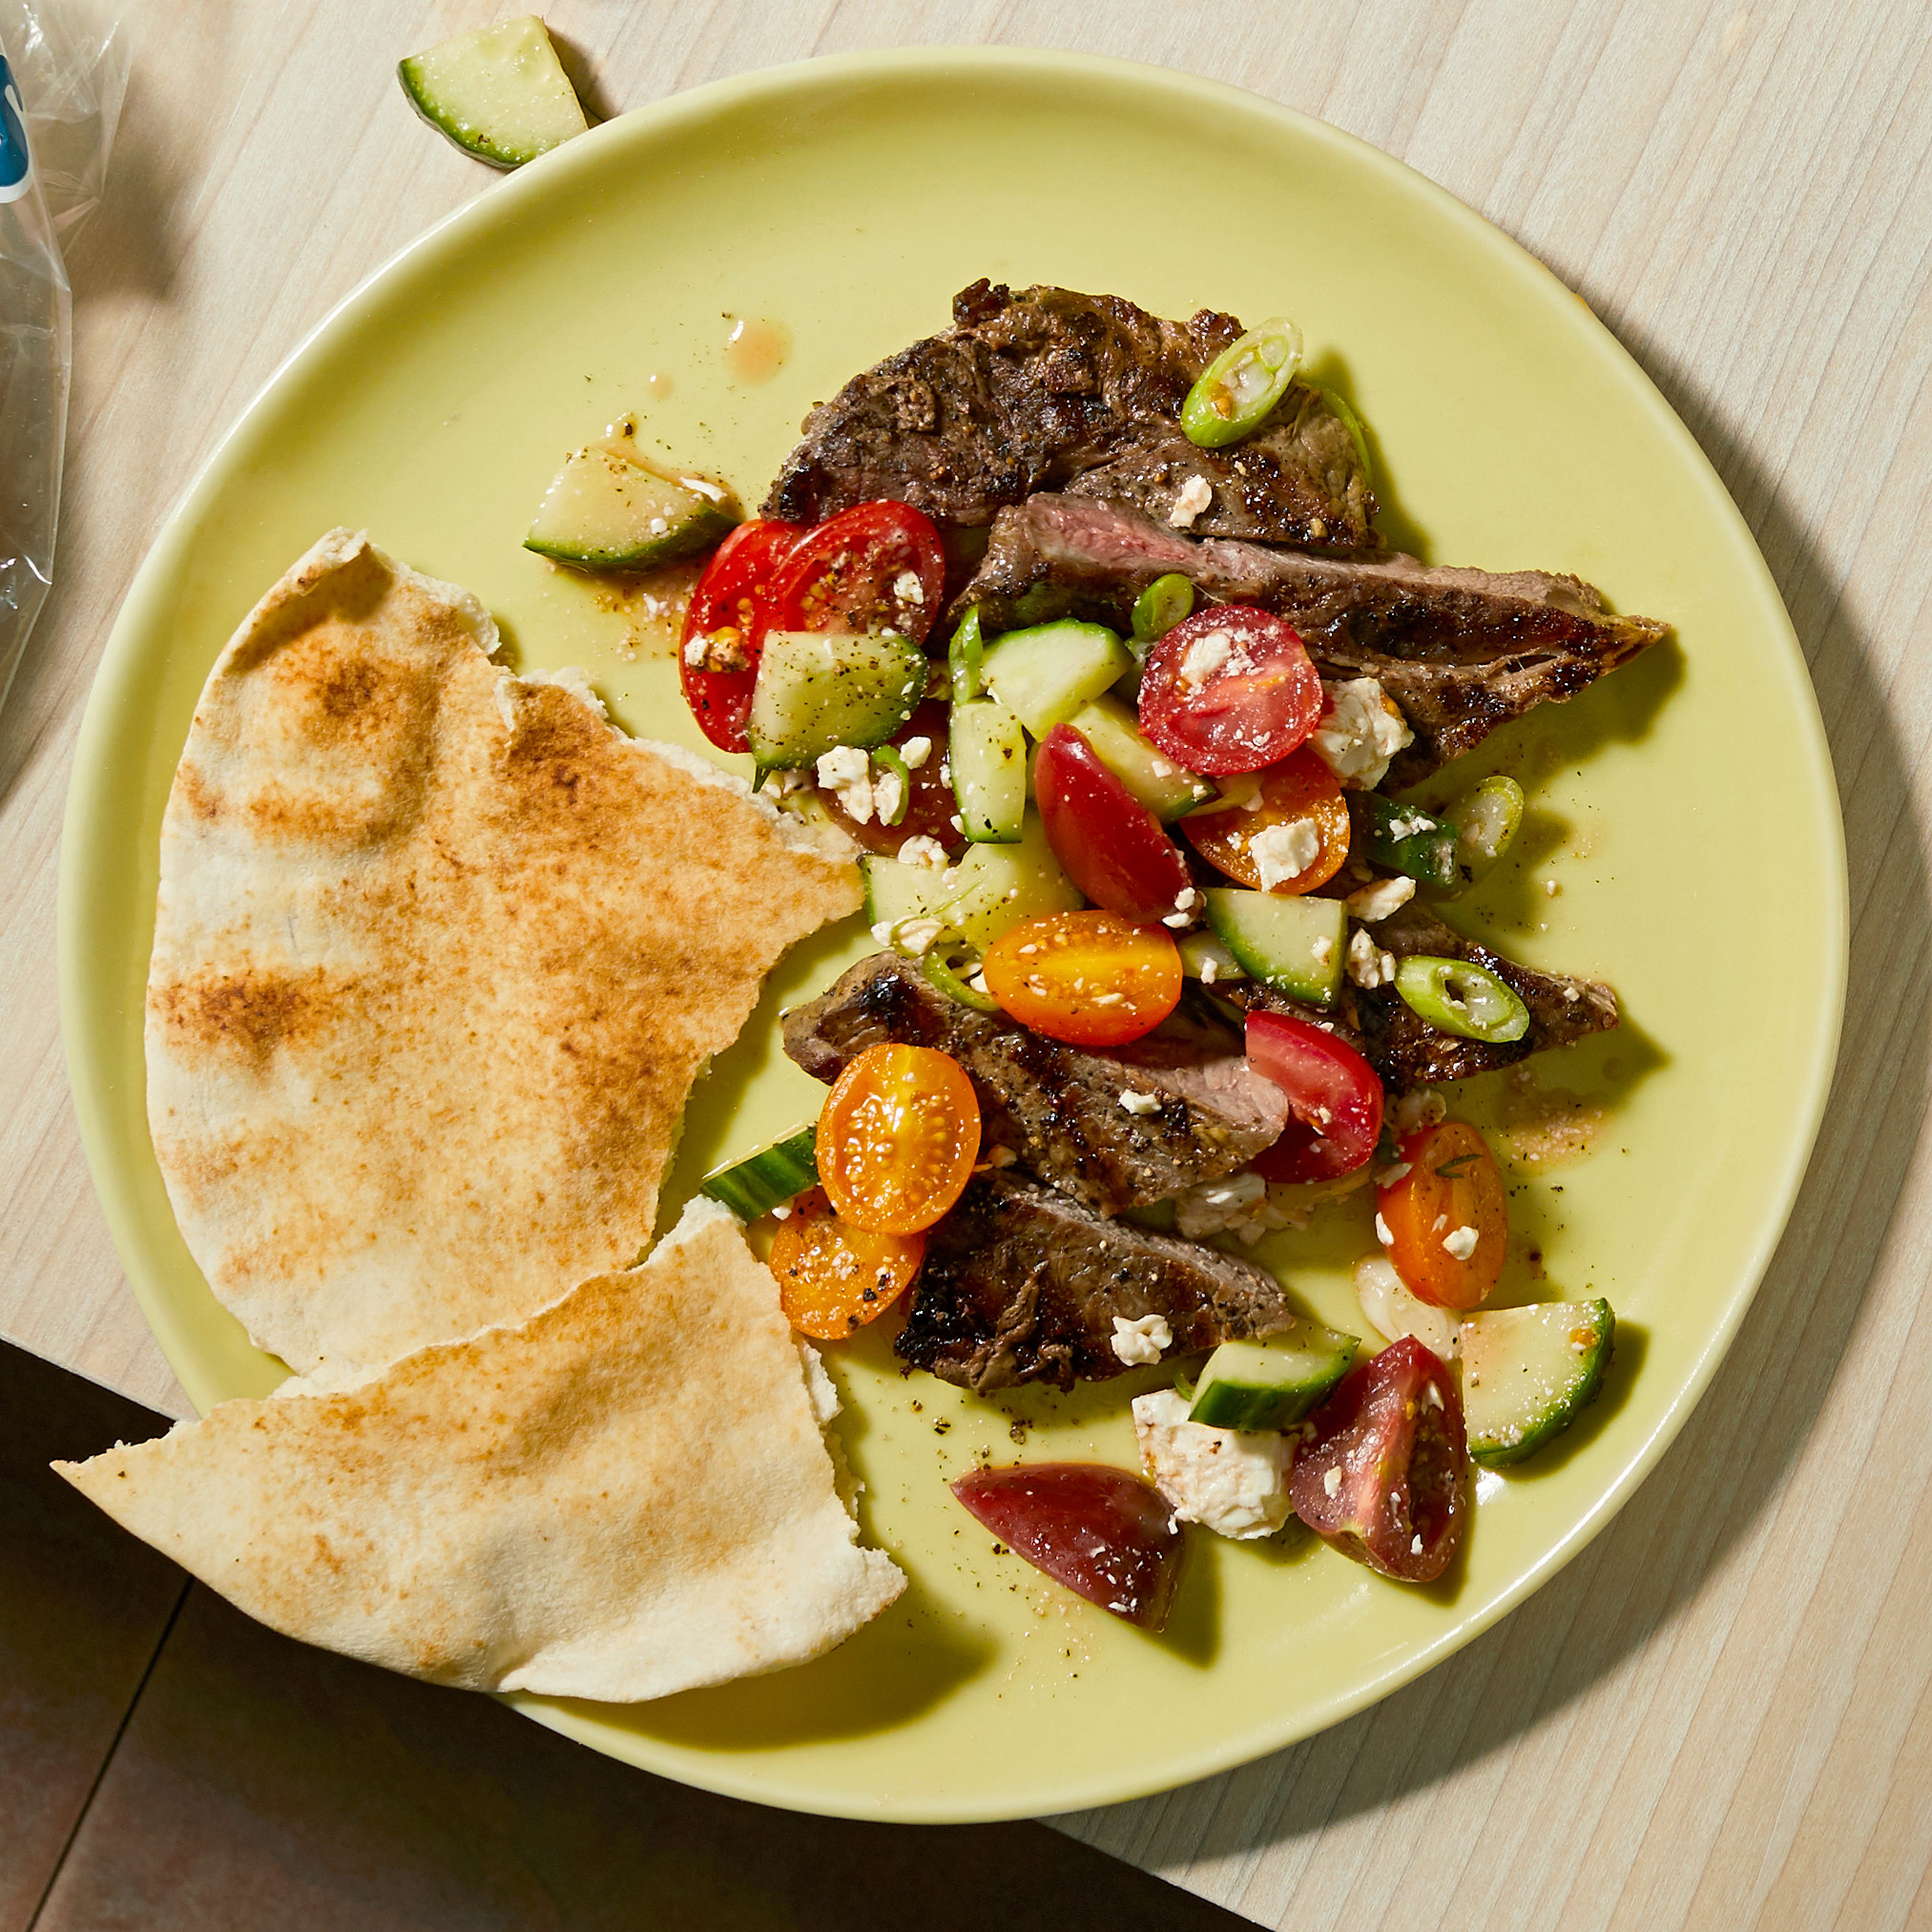 Greek Steak and Salad